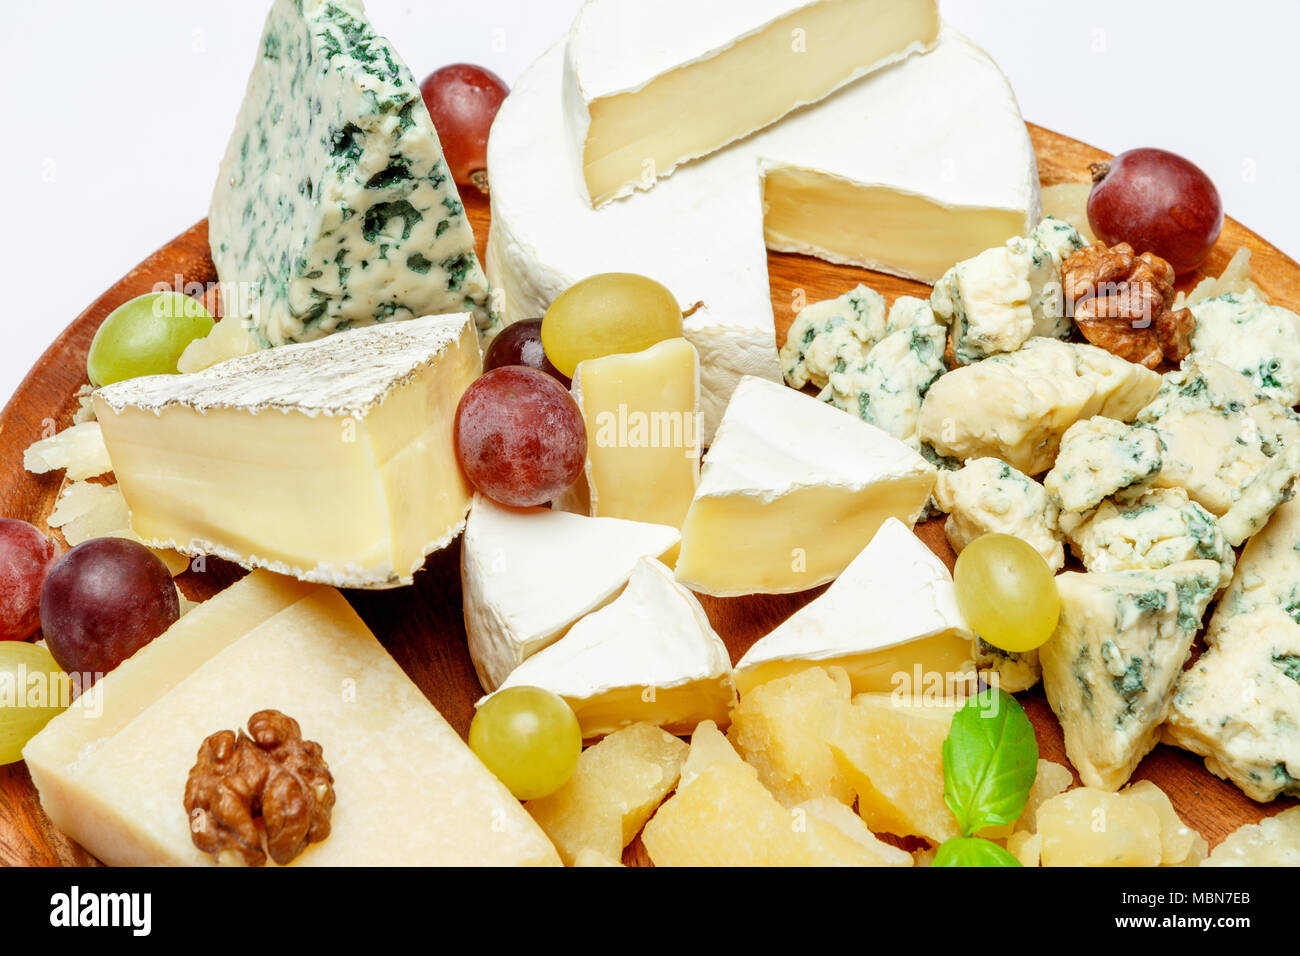 Cheese plate with Assorted cheeses Camembert Brie Parmesan blue cheese goat & Cheese plate with Assorted cheeses Camembert Brie Parmesan blue ...